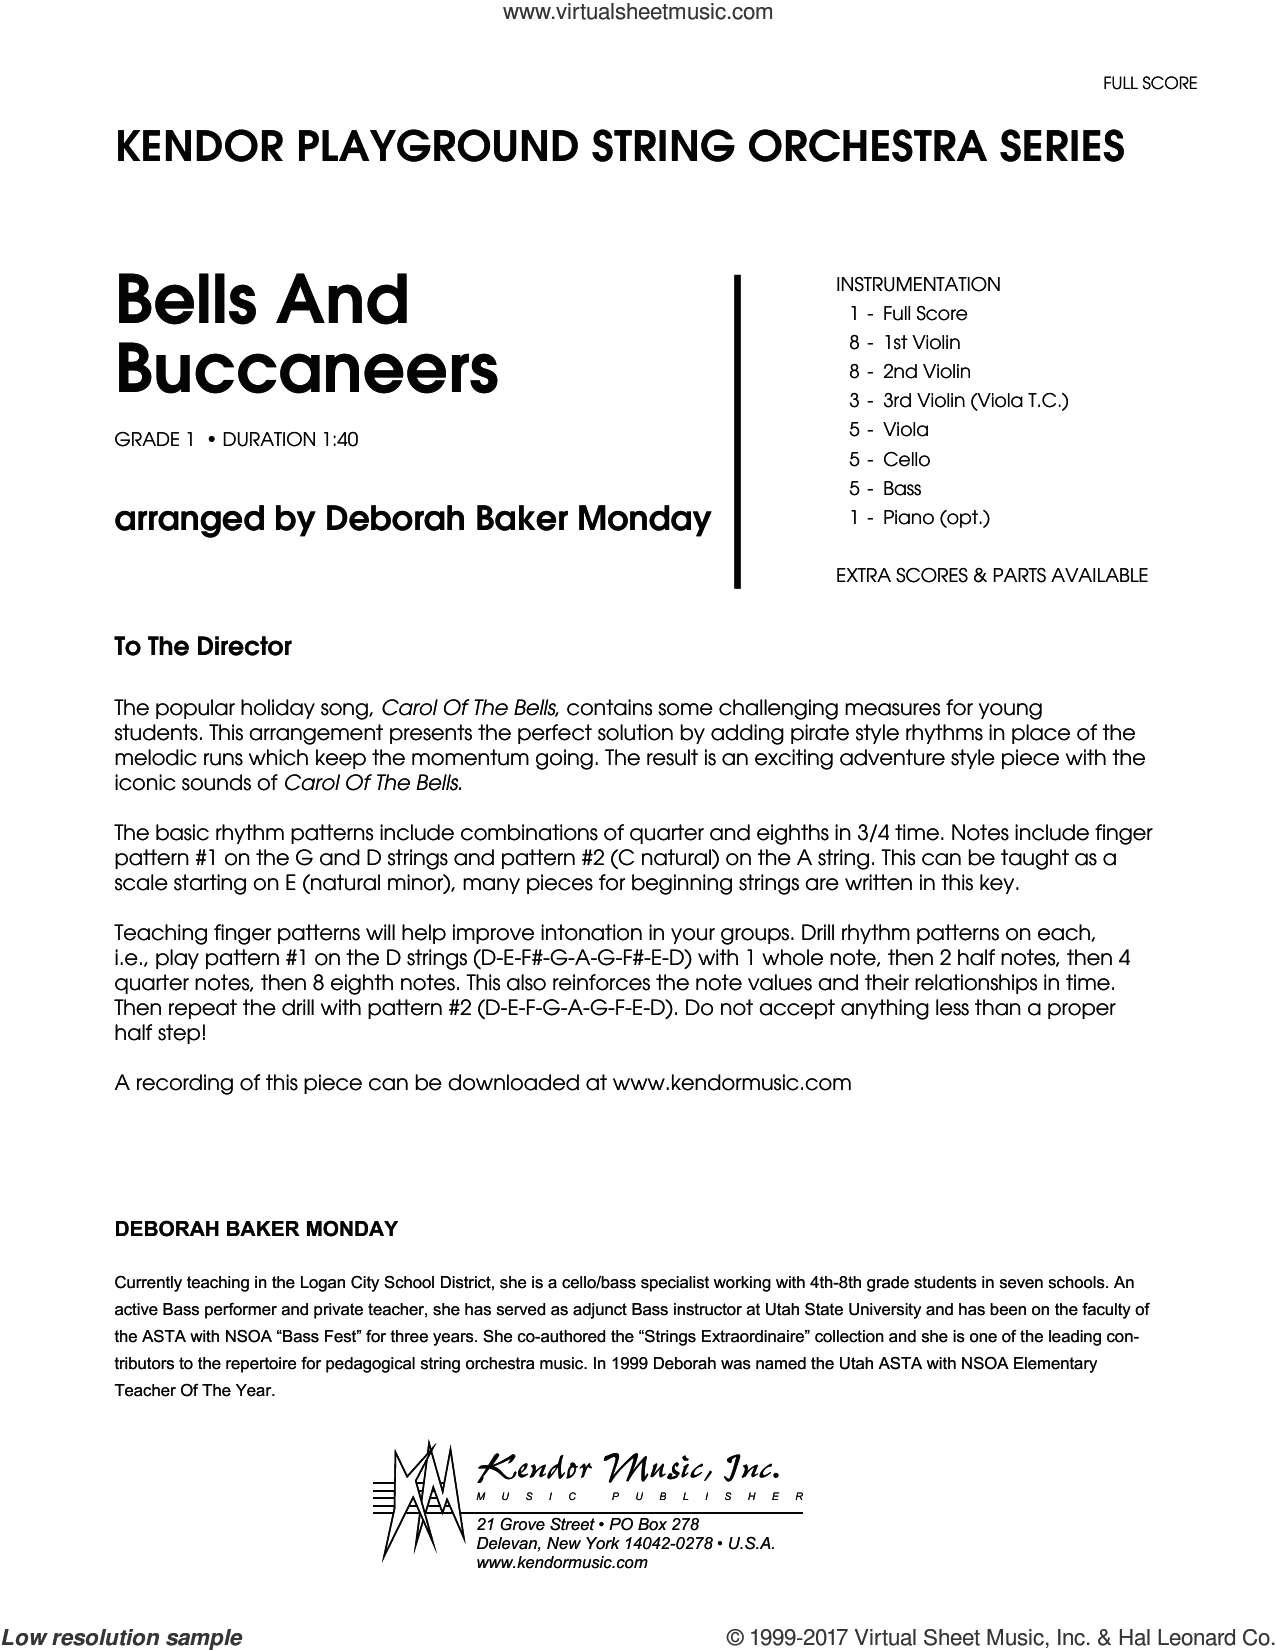 Bells And Buccaneers (COMPLETE) sheet music for orchestra by Deborah Baker Monday and Miscellaneous, classical score, intermediate skill level